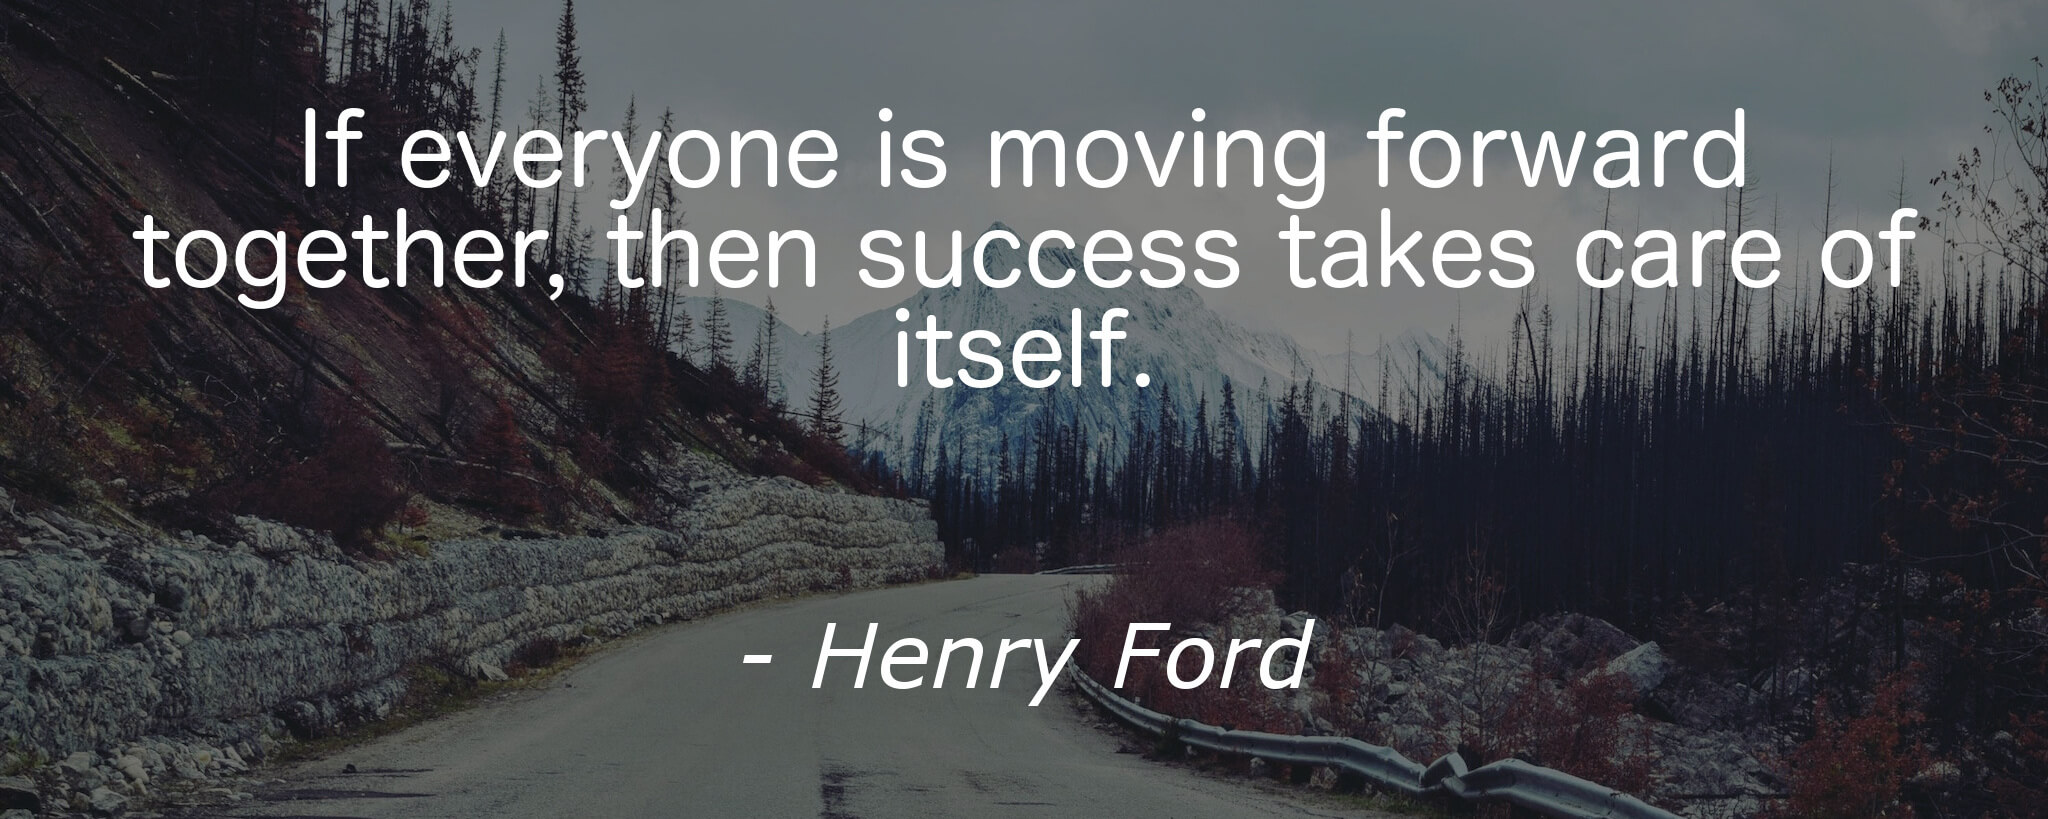 If everyone is moving forward together, then success takes care of itself.